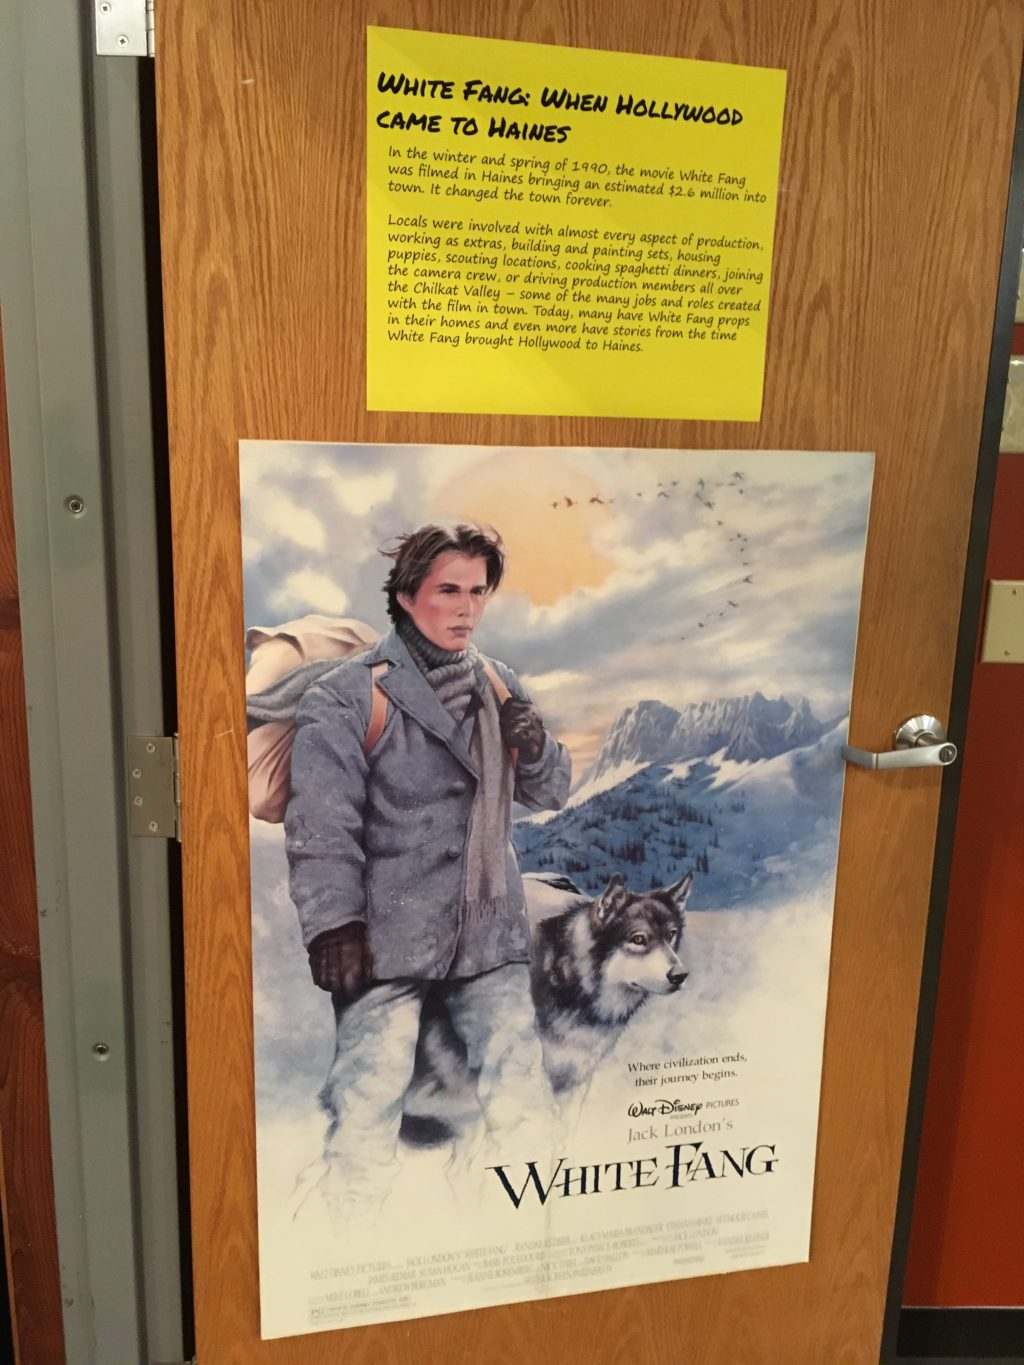 The White Fang exhibit is open through February 24. (Abbey Collins)